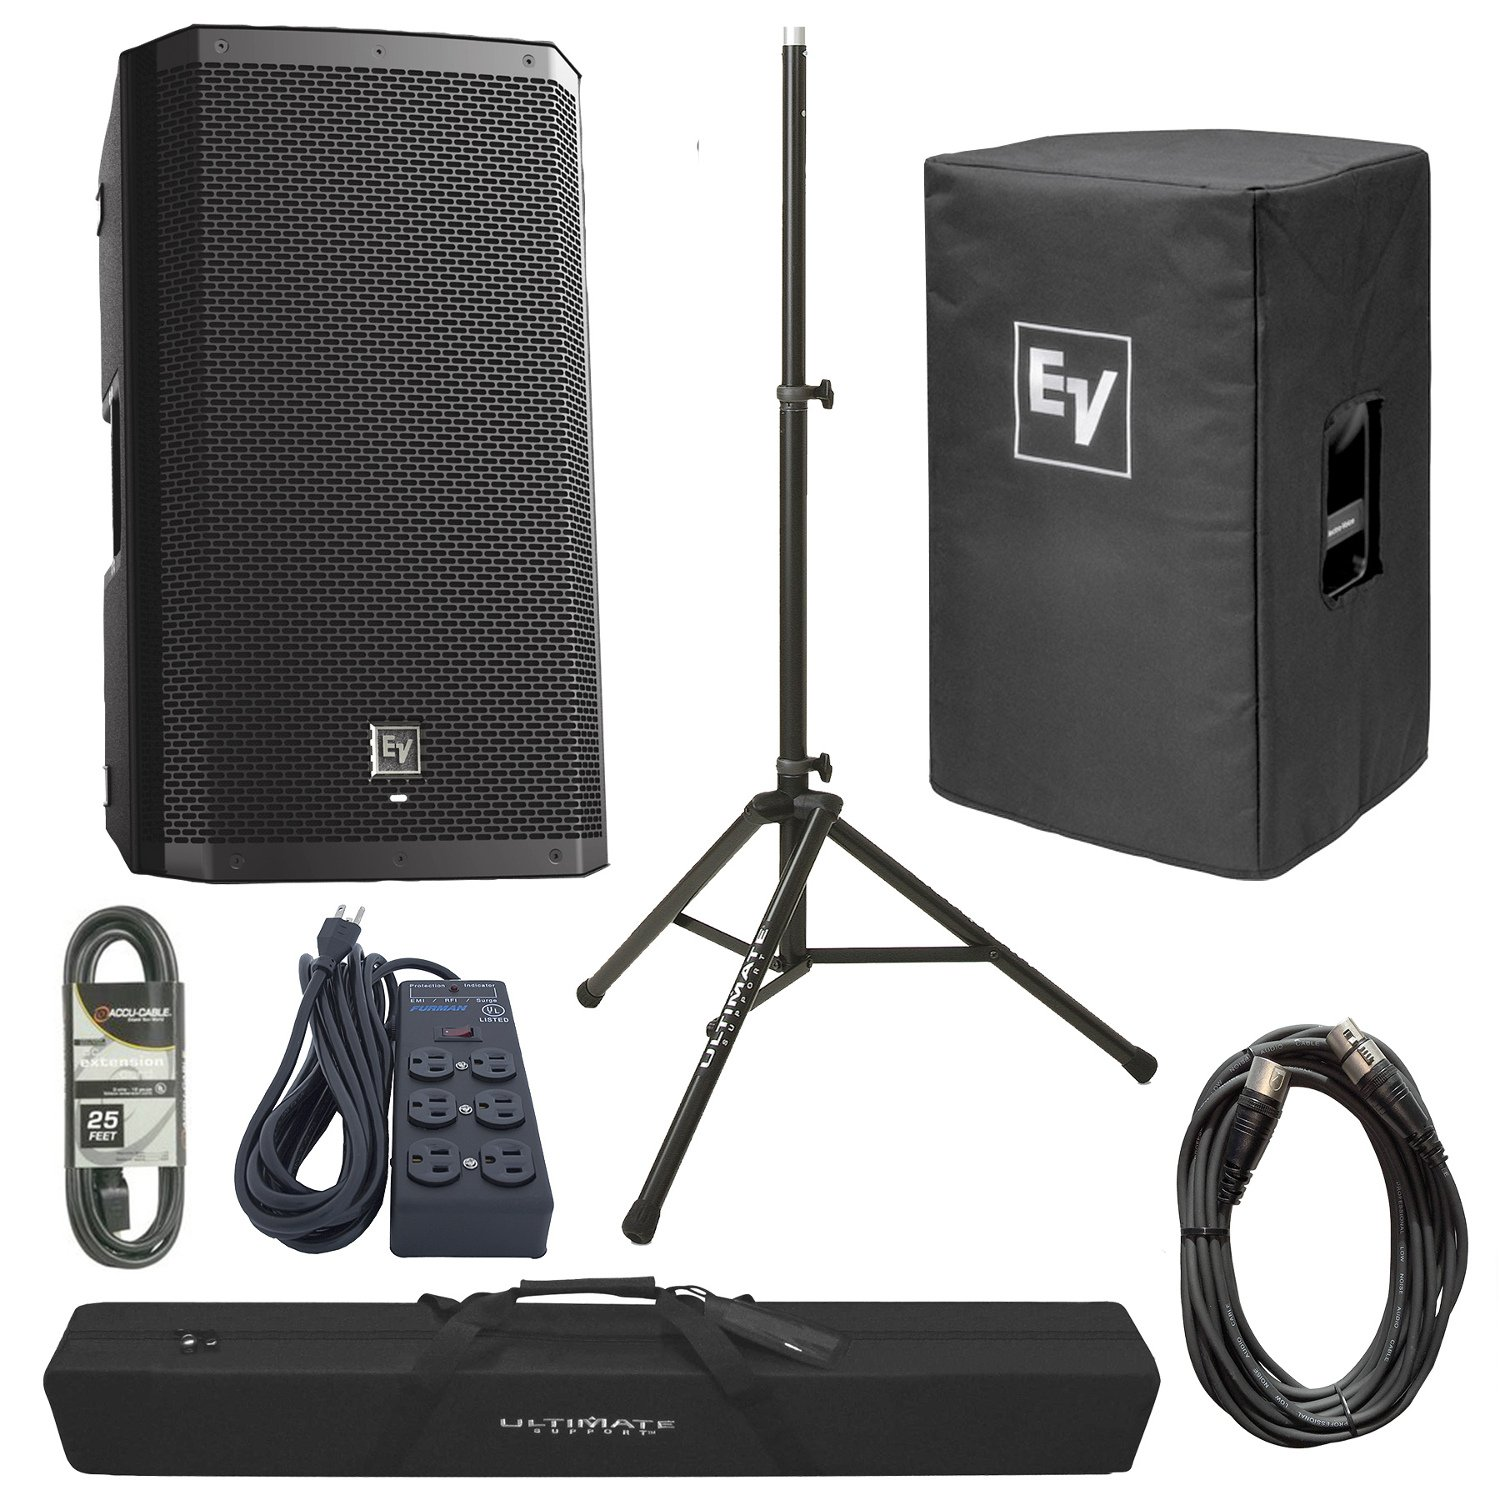 2-Way Powered Loudspeaker with Accessories